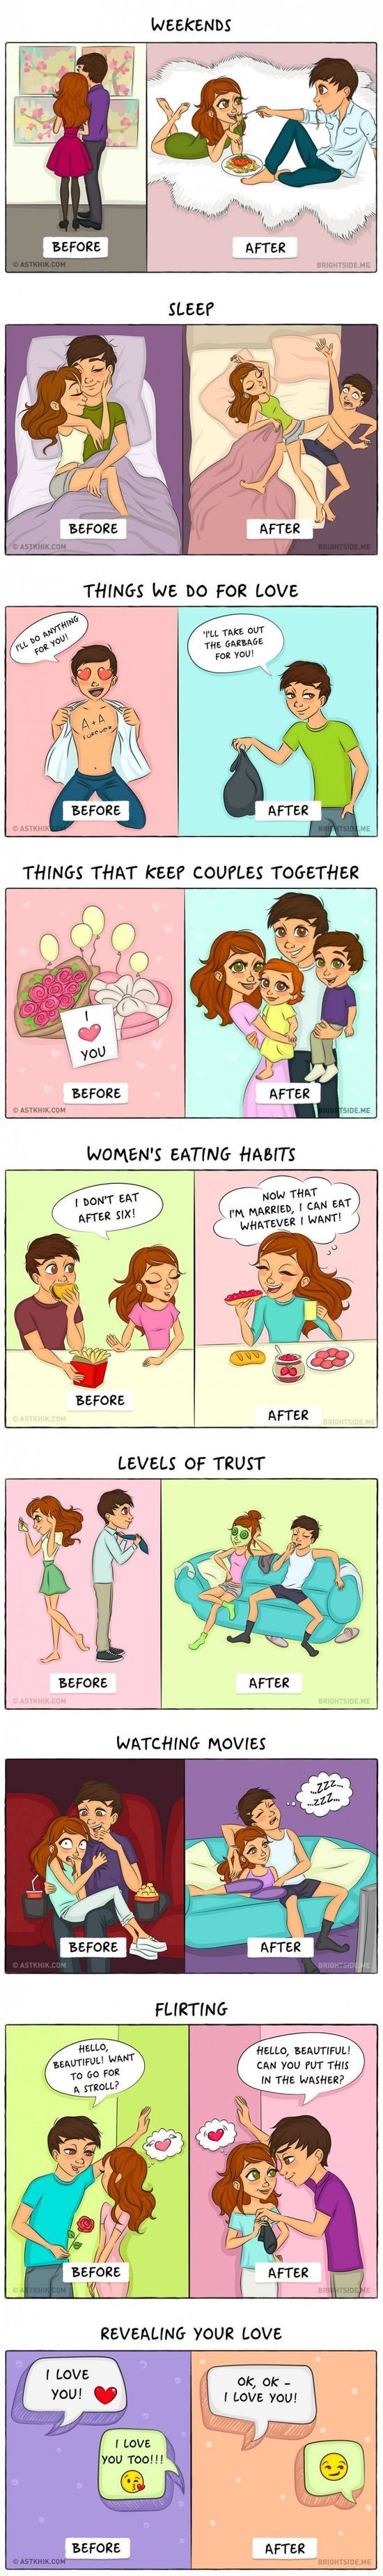 Dating vs marriage in Perth